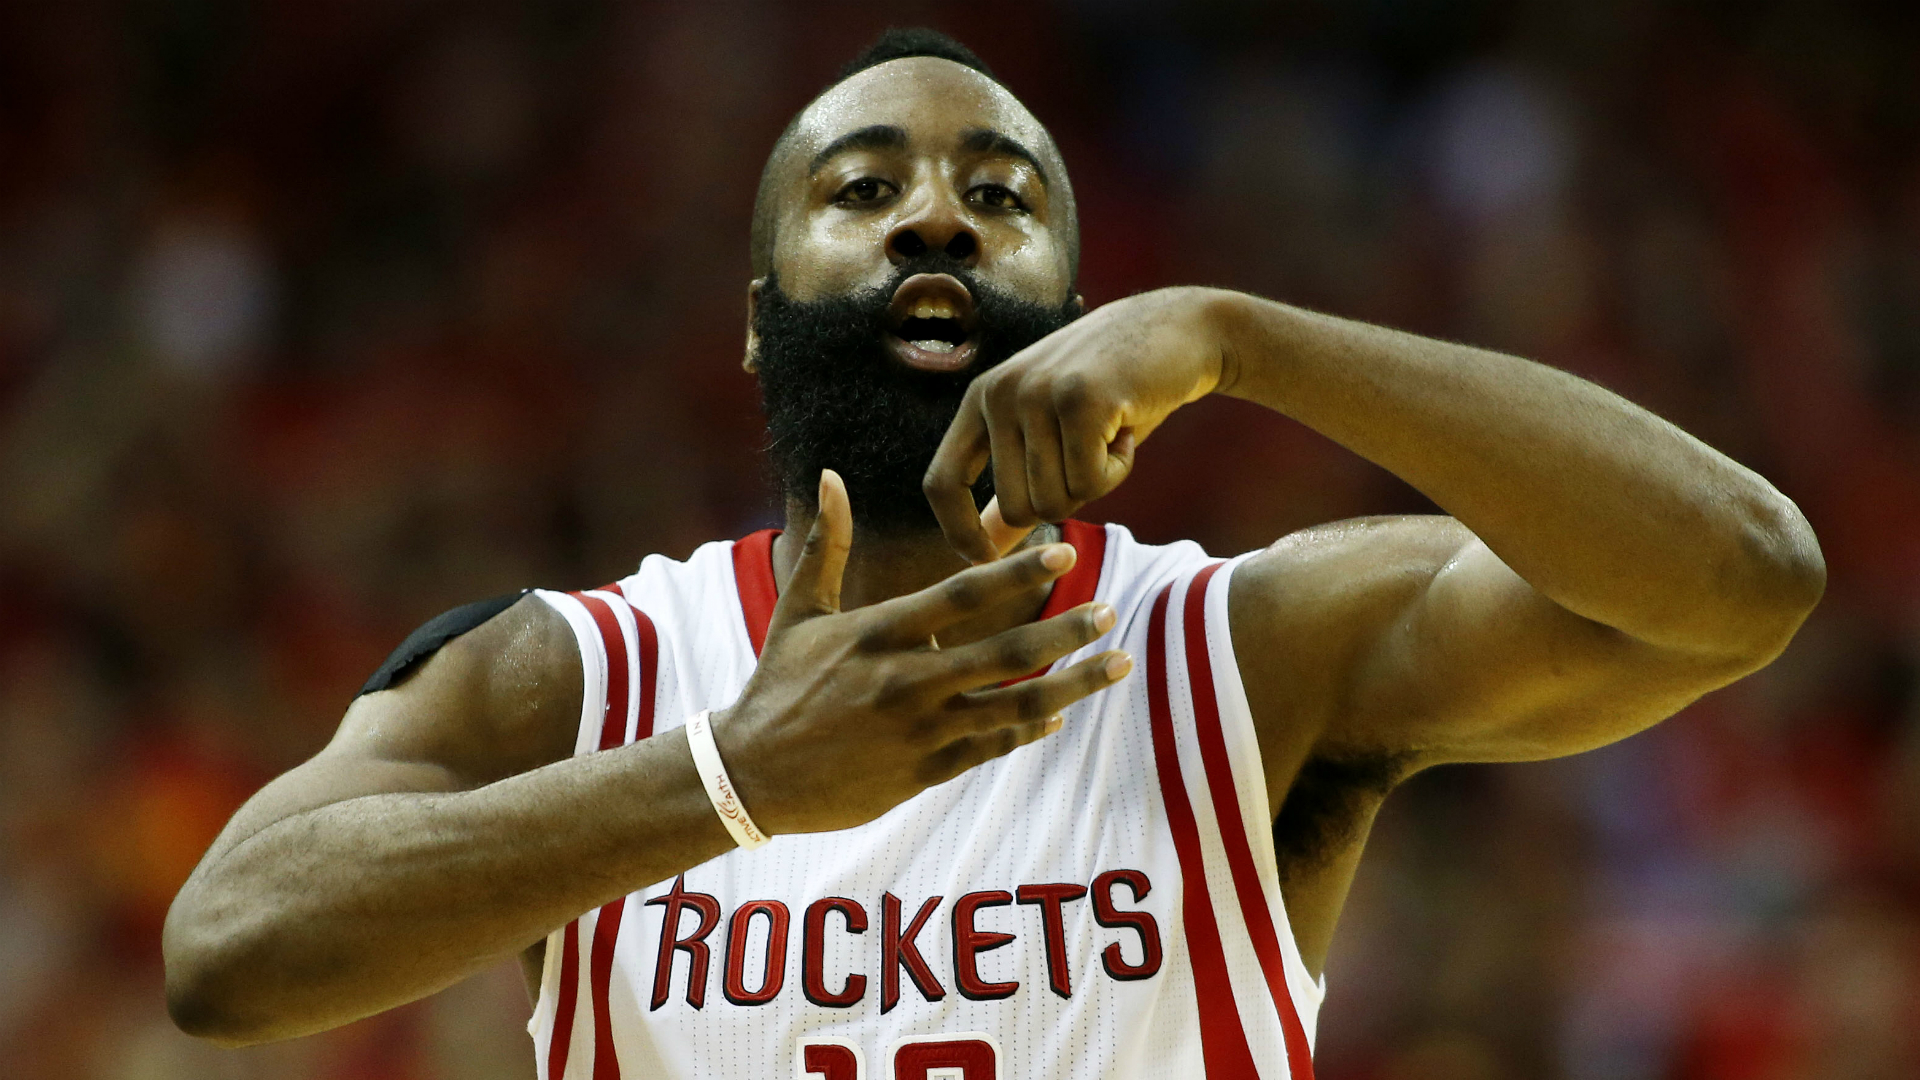 Lil B is threatening to curse James Harden over cooking